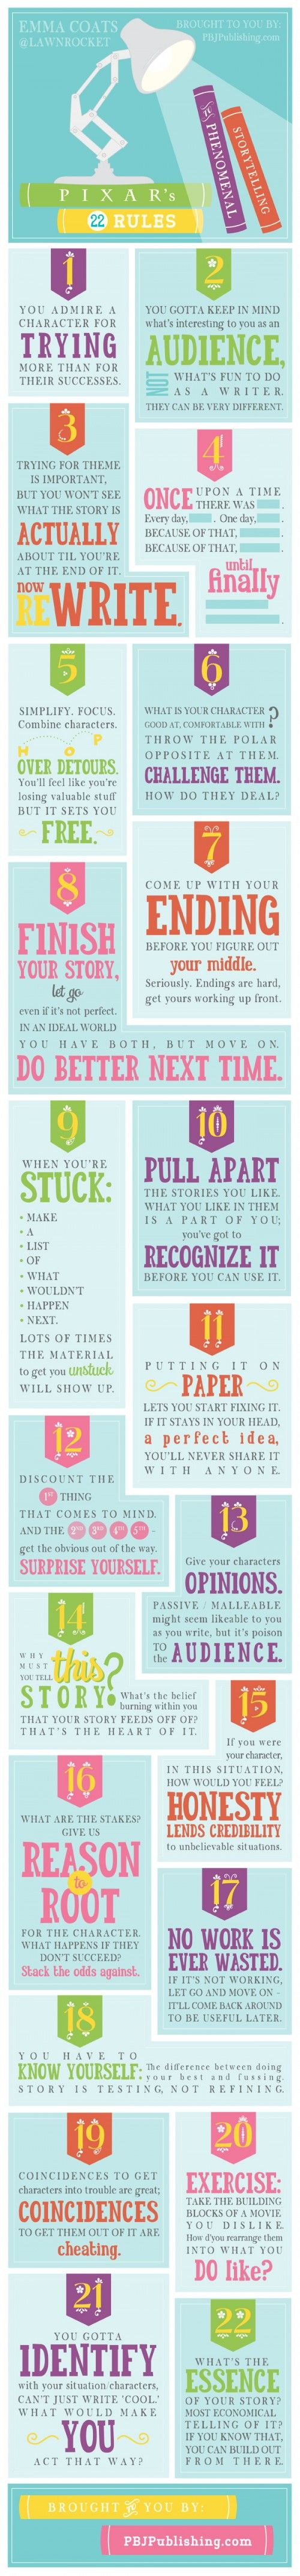 Pixar's 22 Rules to Phenomenal Storytelling, brought to you by @PB Publishing